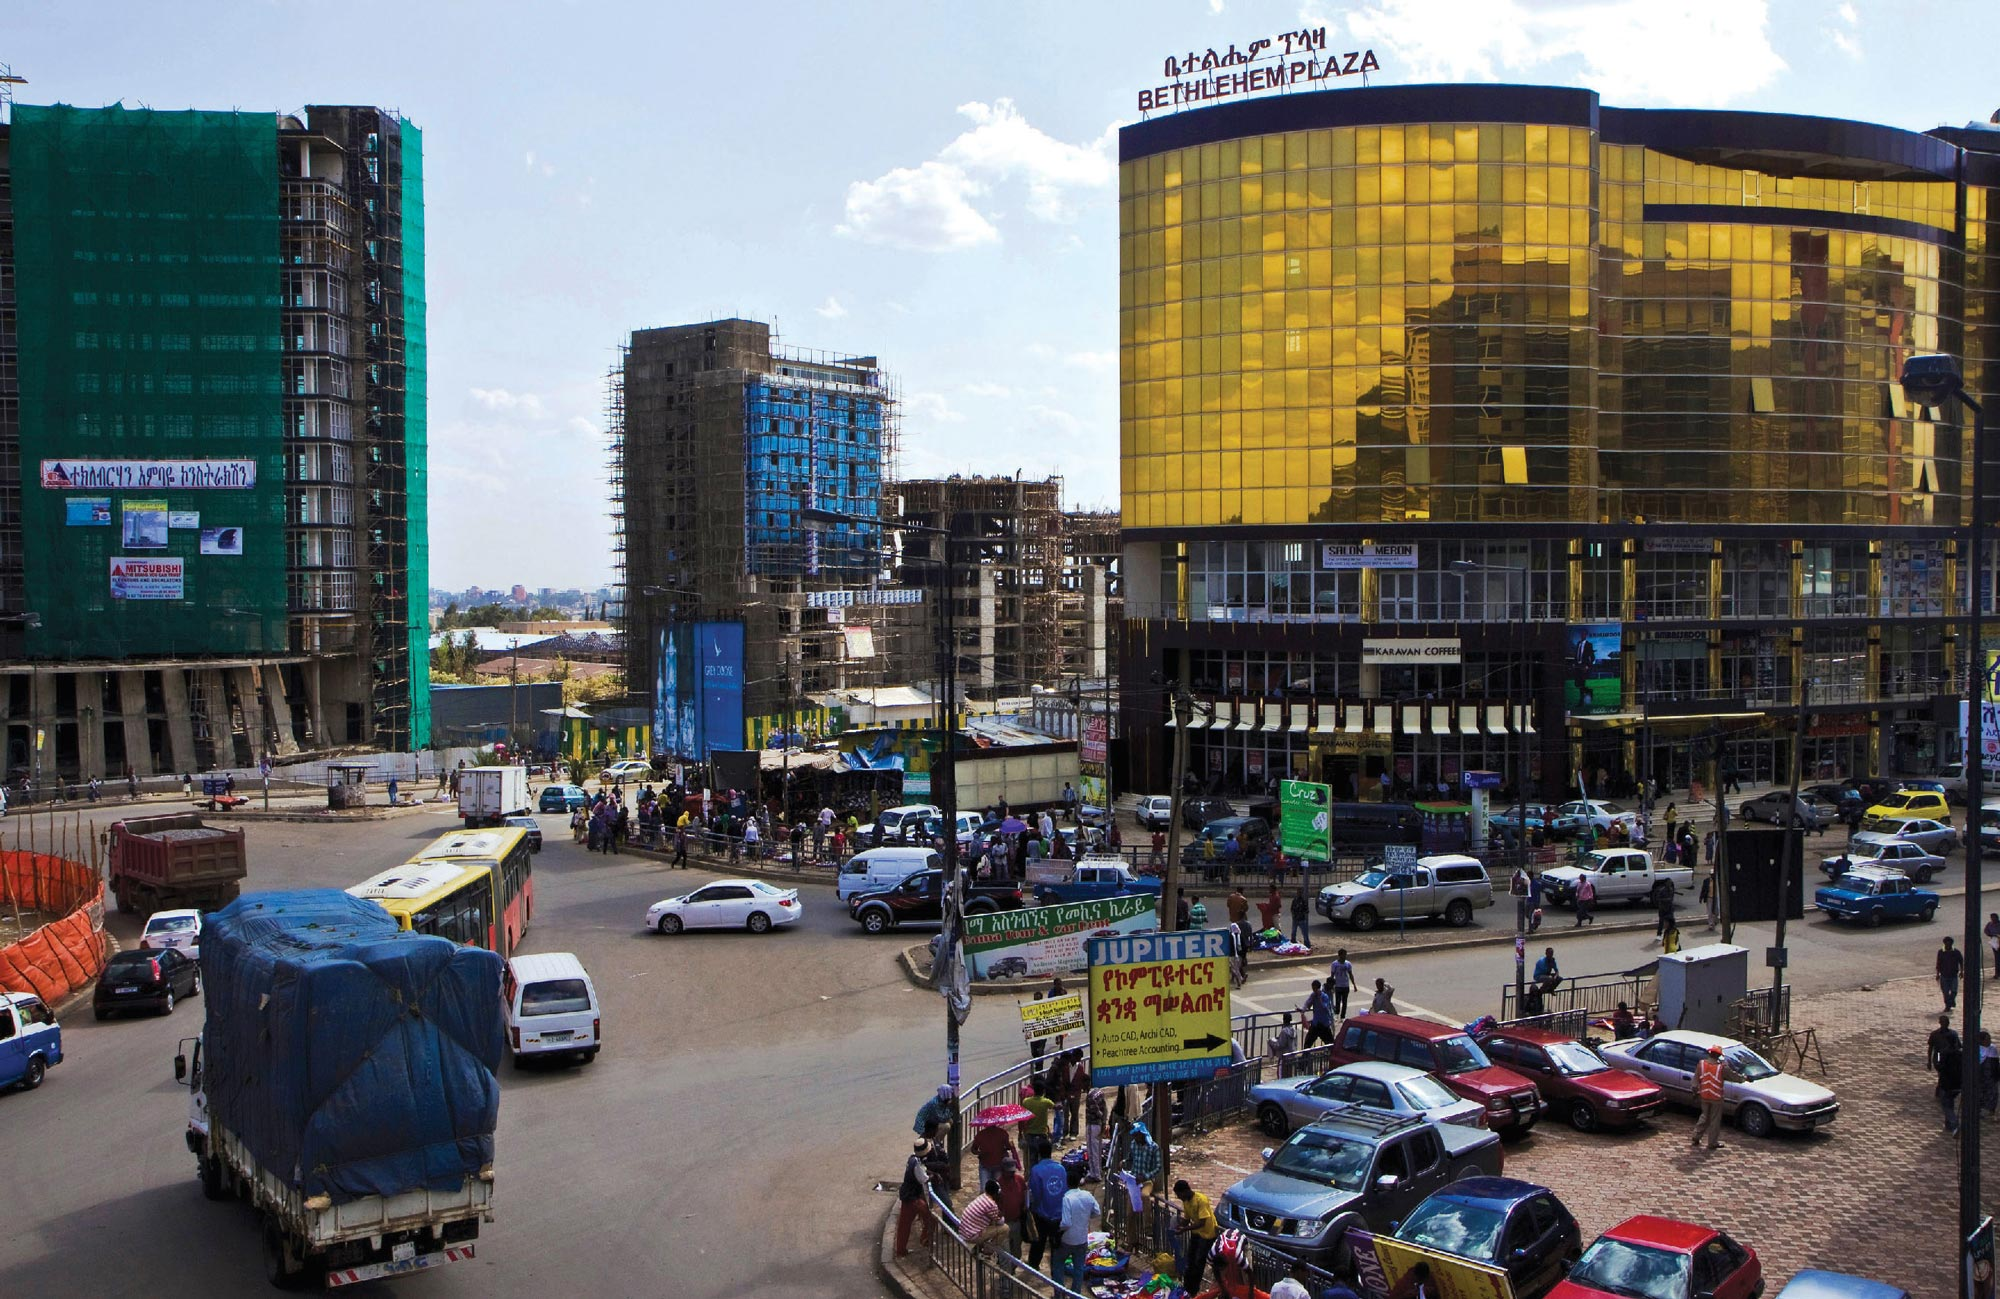 Addis Ababa in Ethiopia.